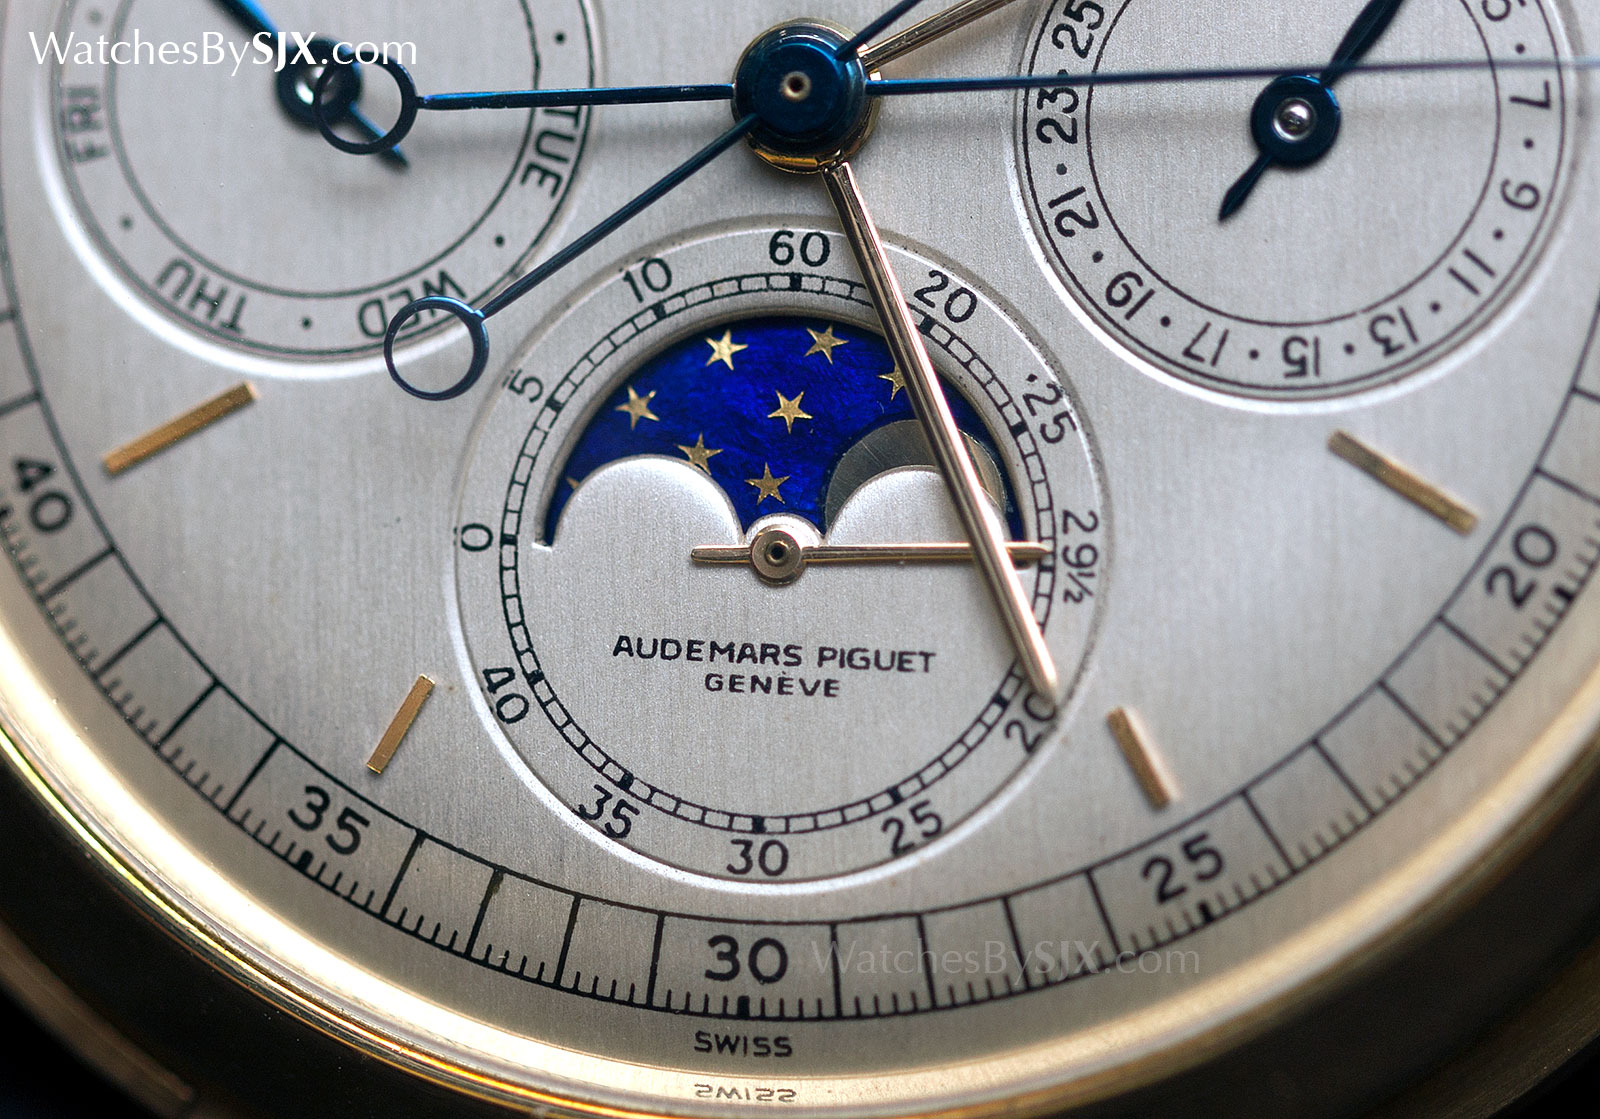 Audemars Piguet grand complication pocket watch c. 1970 1